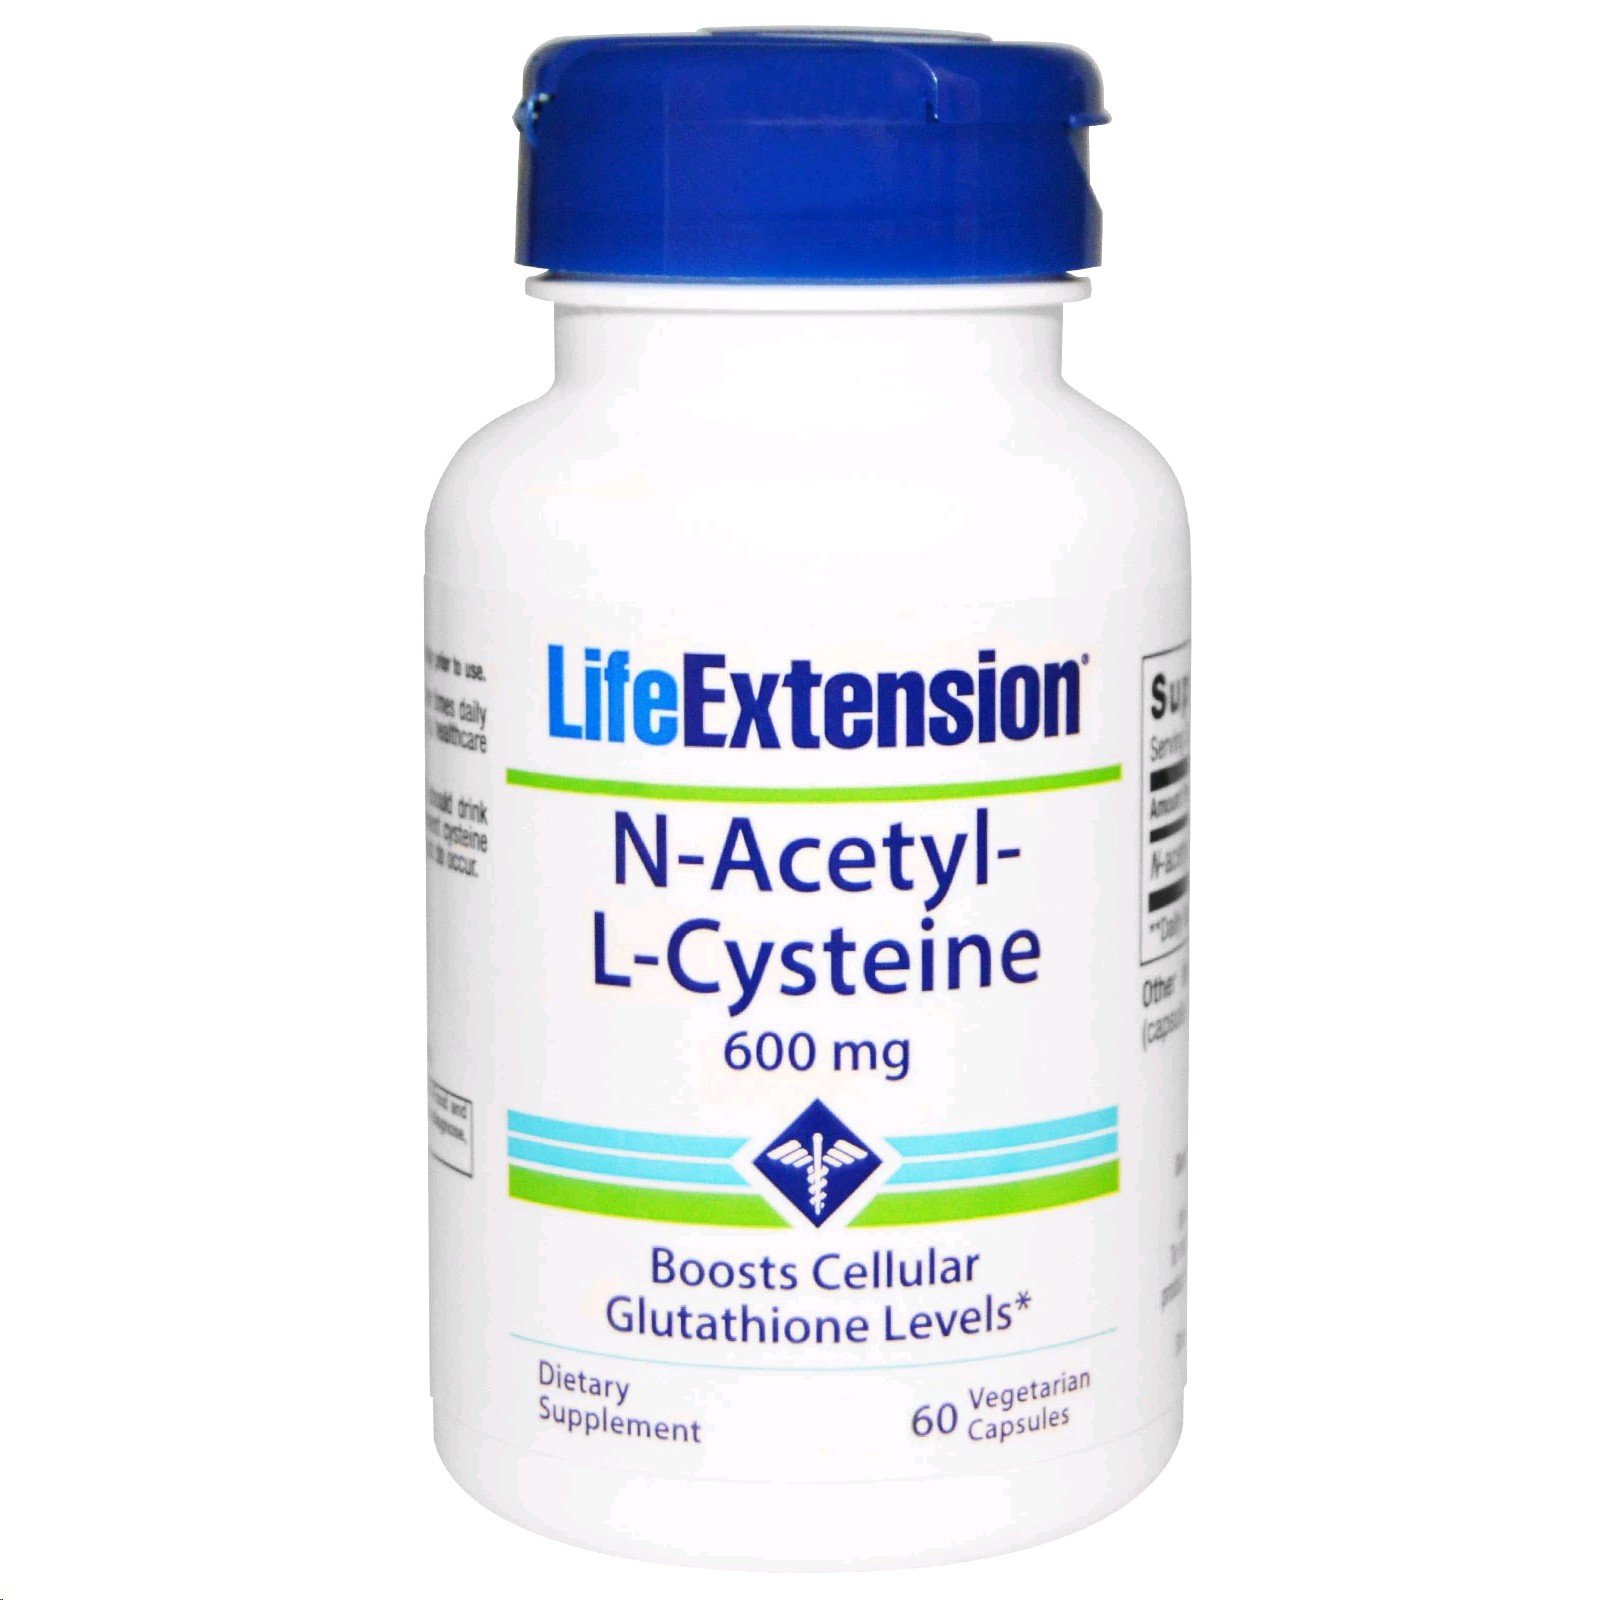 LIFE EXTENSION N-ACETYL L-CYSTEINA 600MG 60 CAPSULES